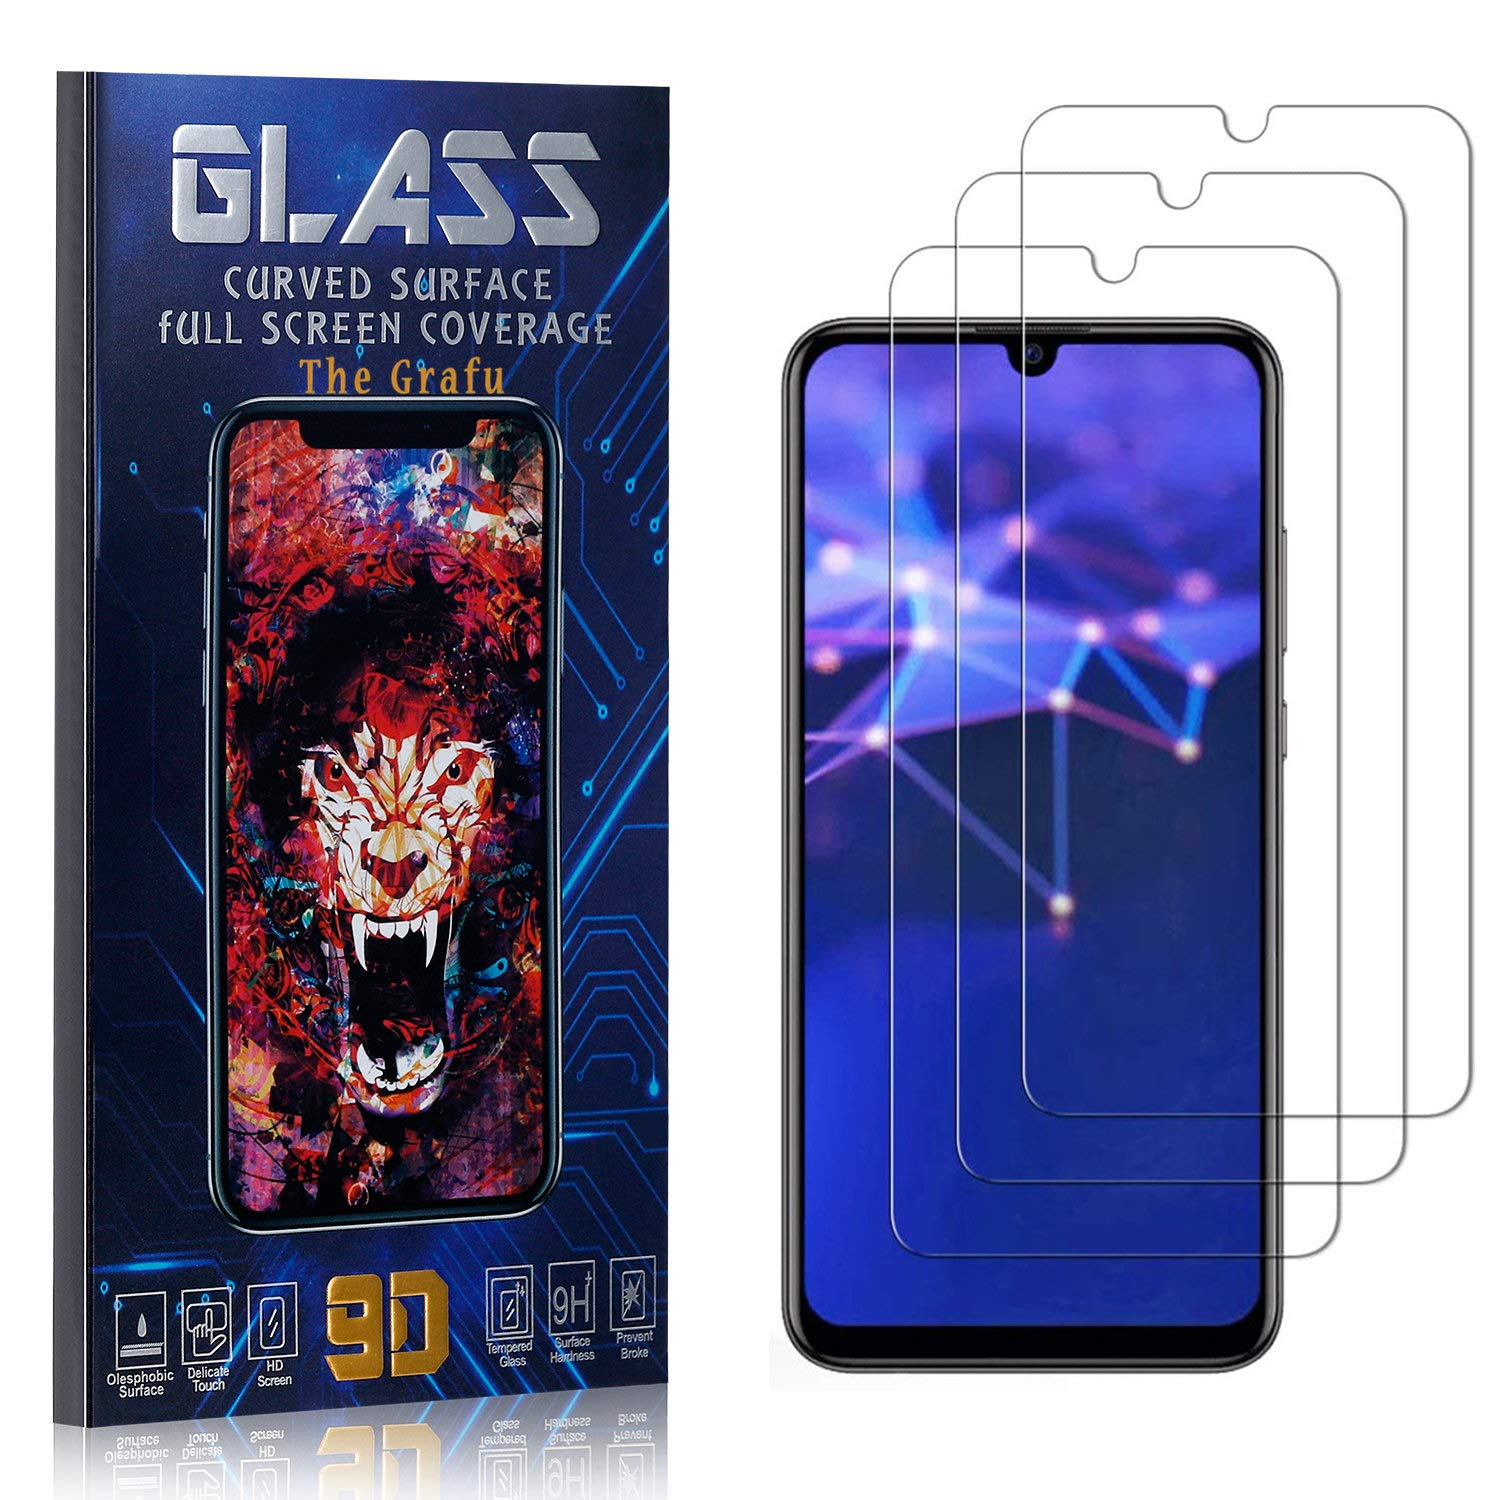 Easy Installation The Grafu Screen Protector for Huawei Honor 20 Lite Tempered Glass High Transparency Screen Protector for Huawei Honor 20 Lite Bubble Free 3 Pack